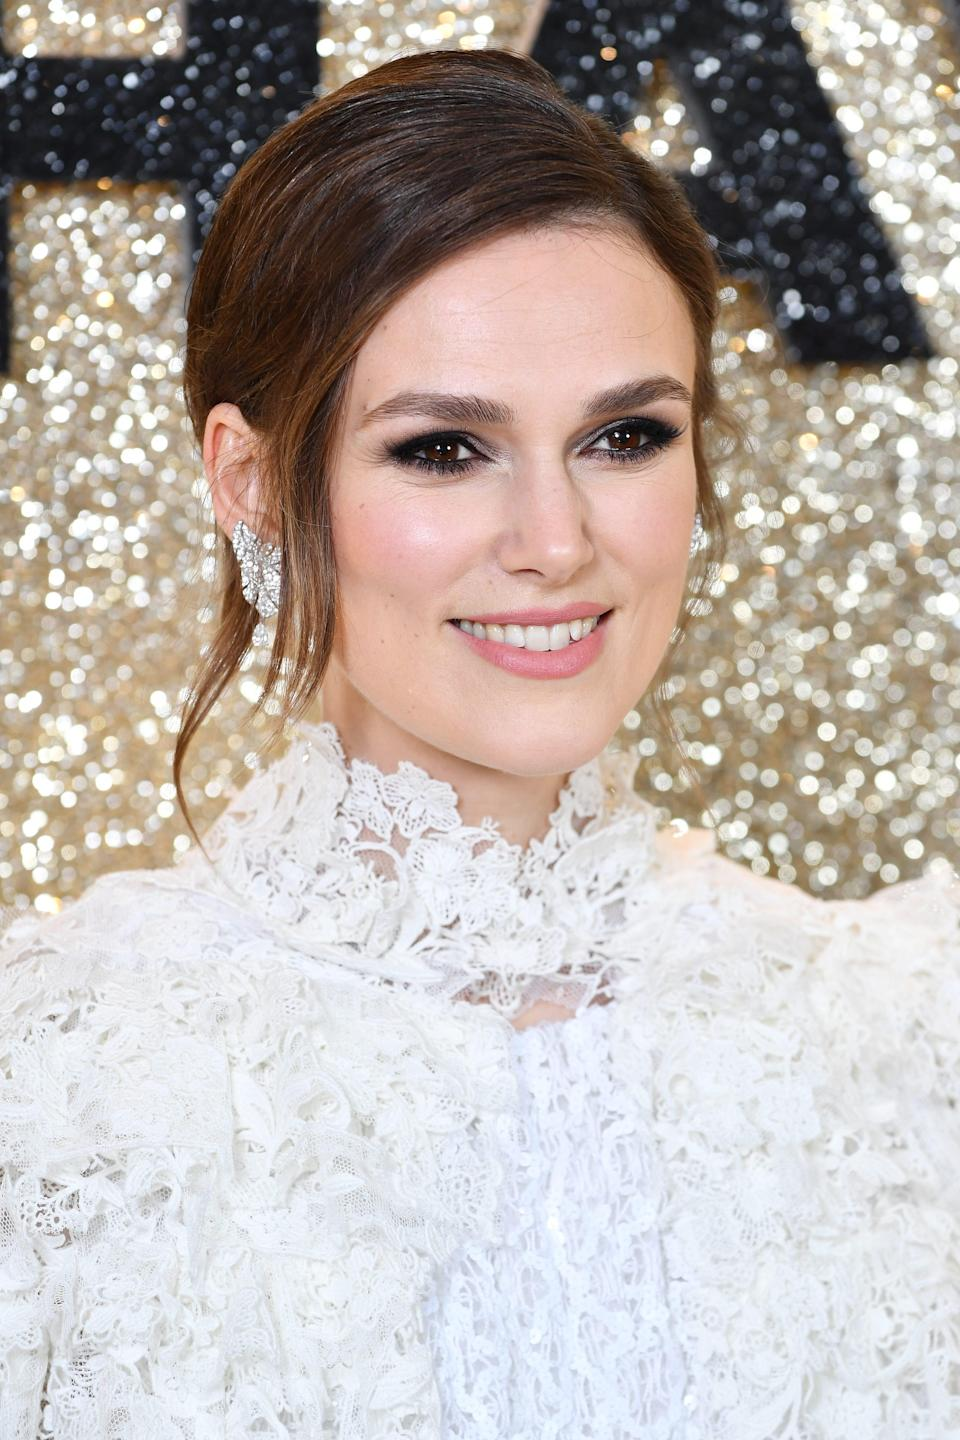 During an interview for the Chanel Connects podcast,Keira Knightley opened up about portraying women's experiences in film,revealingthat she's uninterested in doingscenes withnudity unless they're madebyafemale filmmaker.